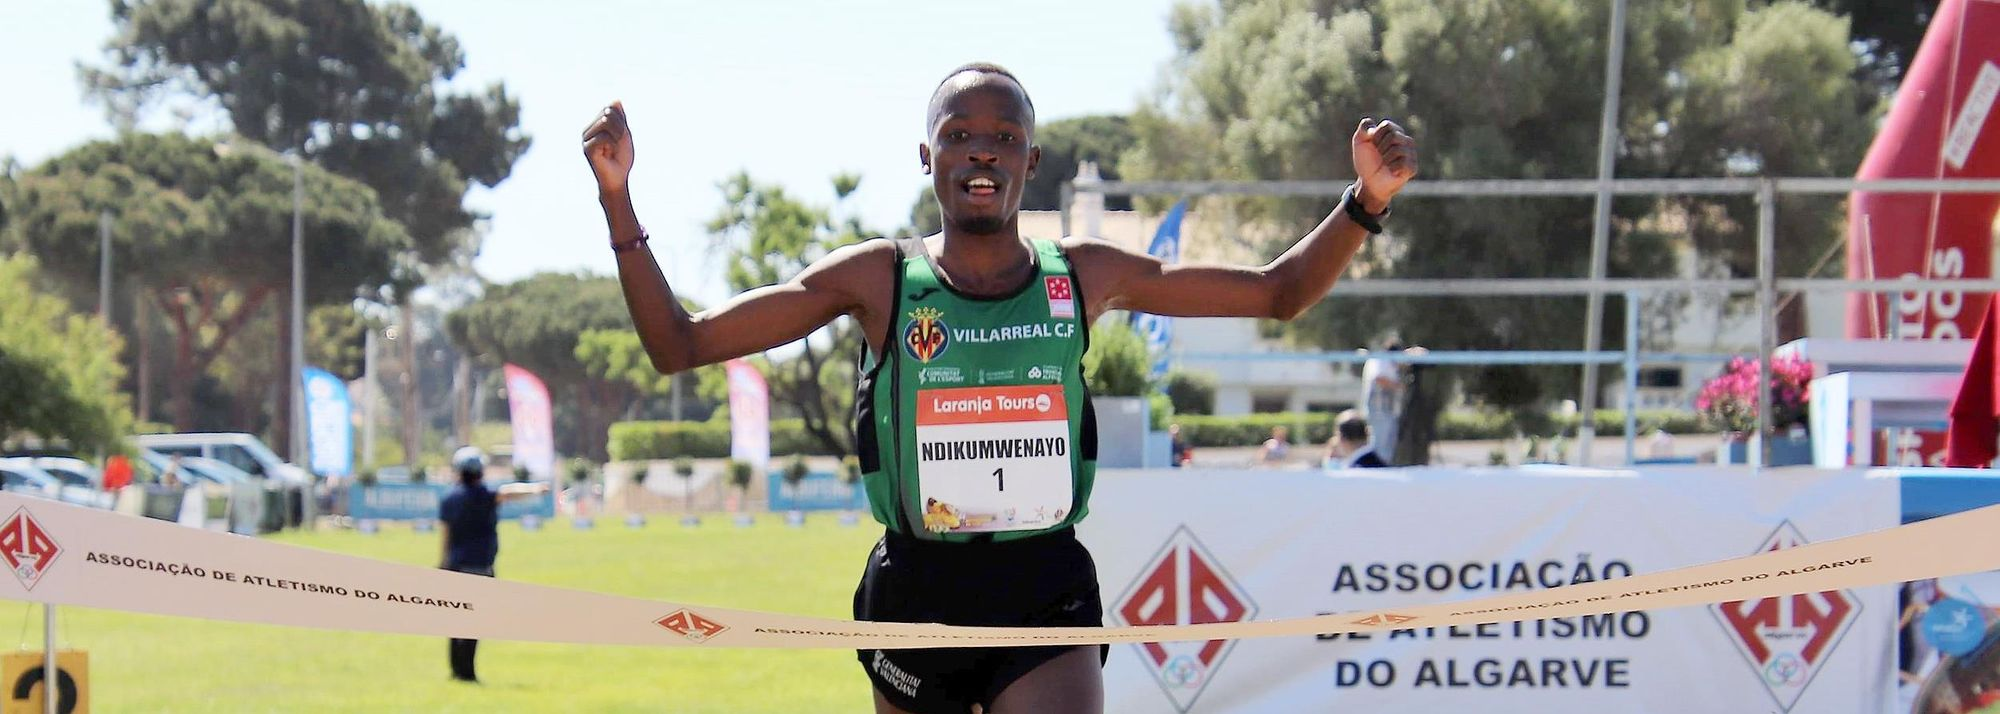 Burundi's Thierry Ndikumwenayo and Ethiopia's Likina Amebaw Ayel were victorious at the Almond Blossom Cross Country, the third and final meeting in the truncated 2021 World Athletics Cross Country Permit series, in Albufeira on Sunday (18).